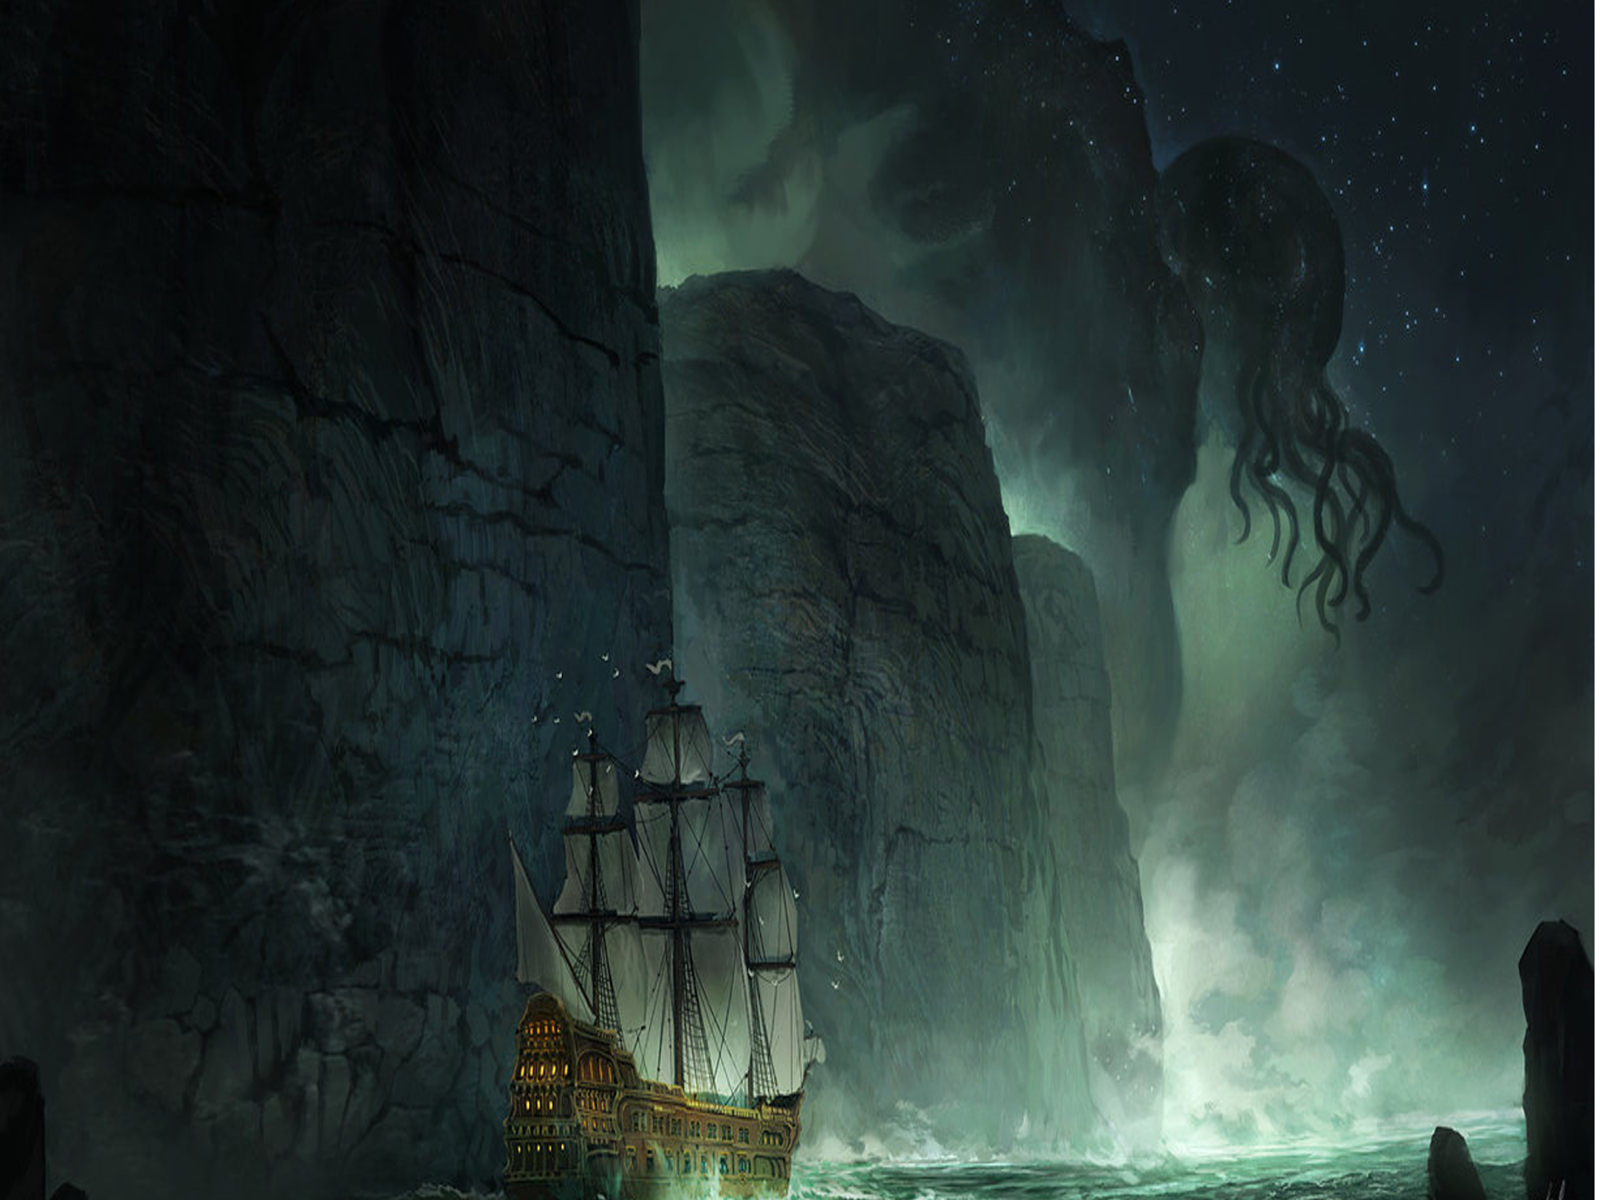 ship and cthulu monster background